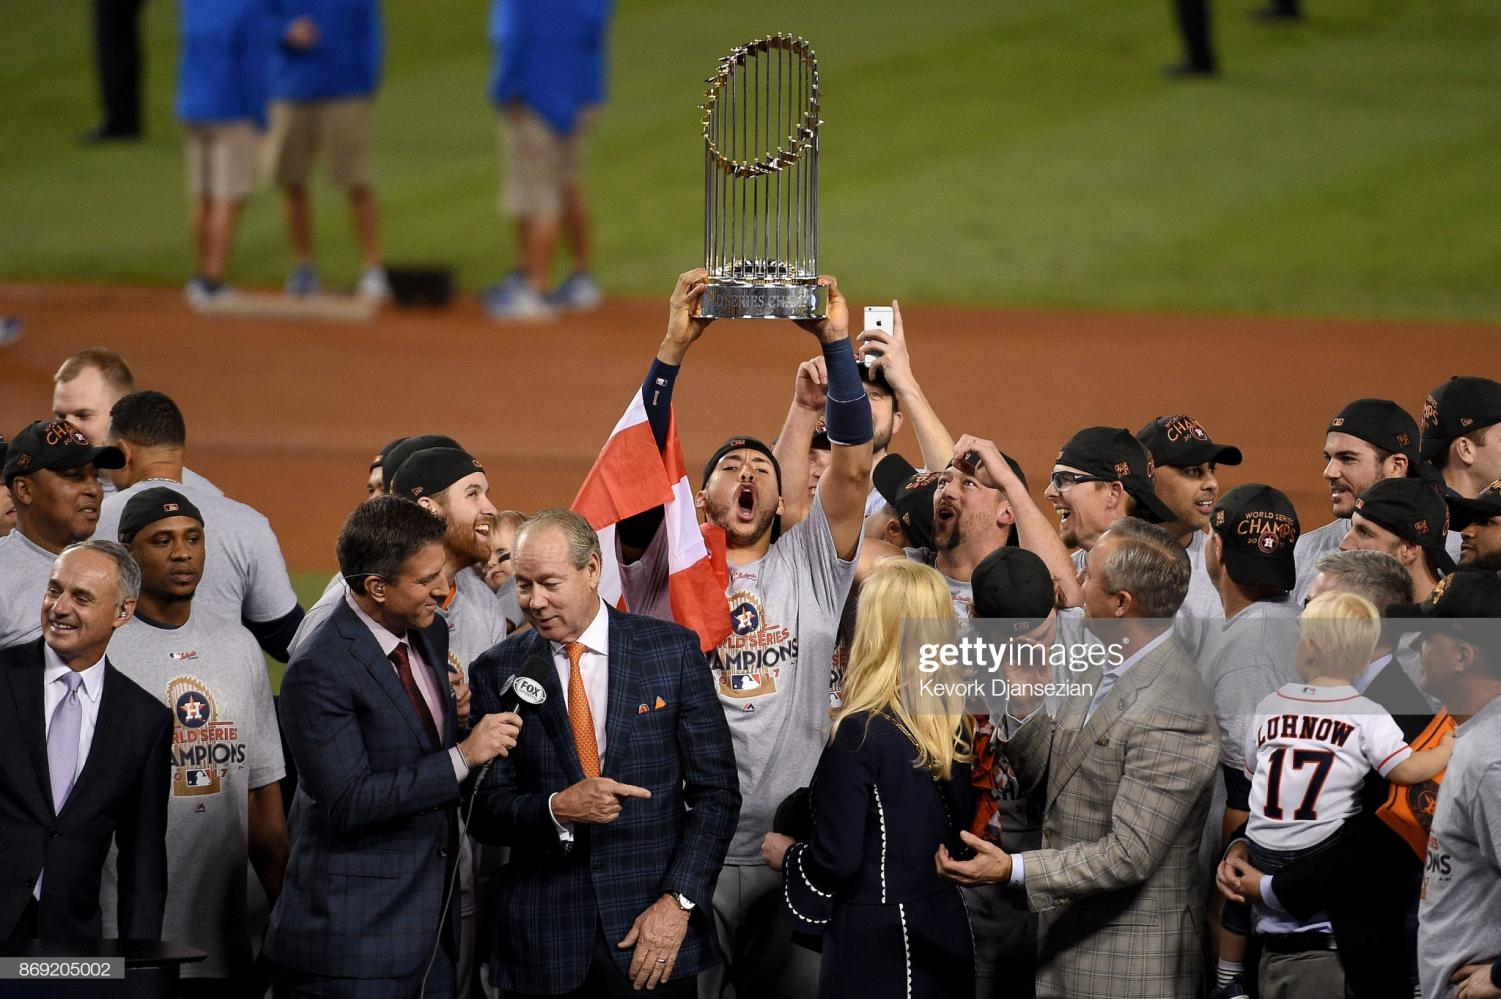 LOS ANGELES, CA - NOVEMBER 01: Carlos Correa #1 of the Houston Astros hoists the Commissioner's Trophy after defeating the Los Angeles Dodgers 5-1 in game seven to win the 2017 World Series at Dodger Stadium on November 1, 2017 in Los Angeles, California.